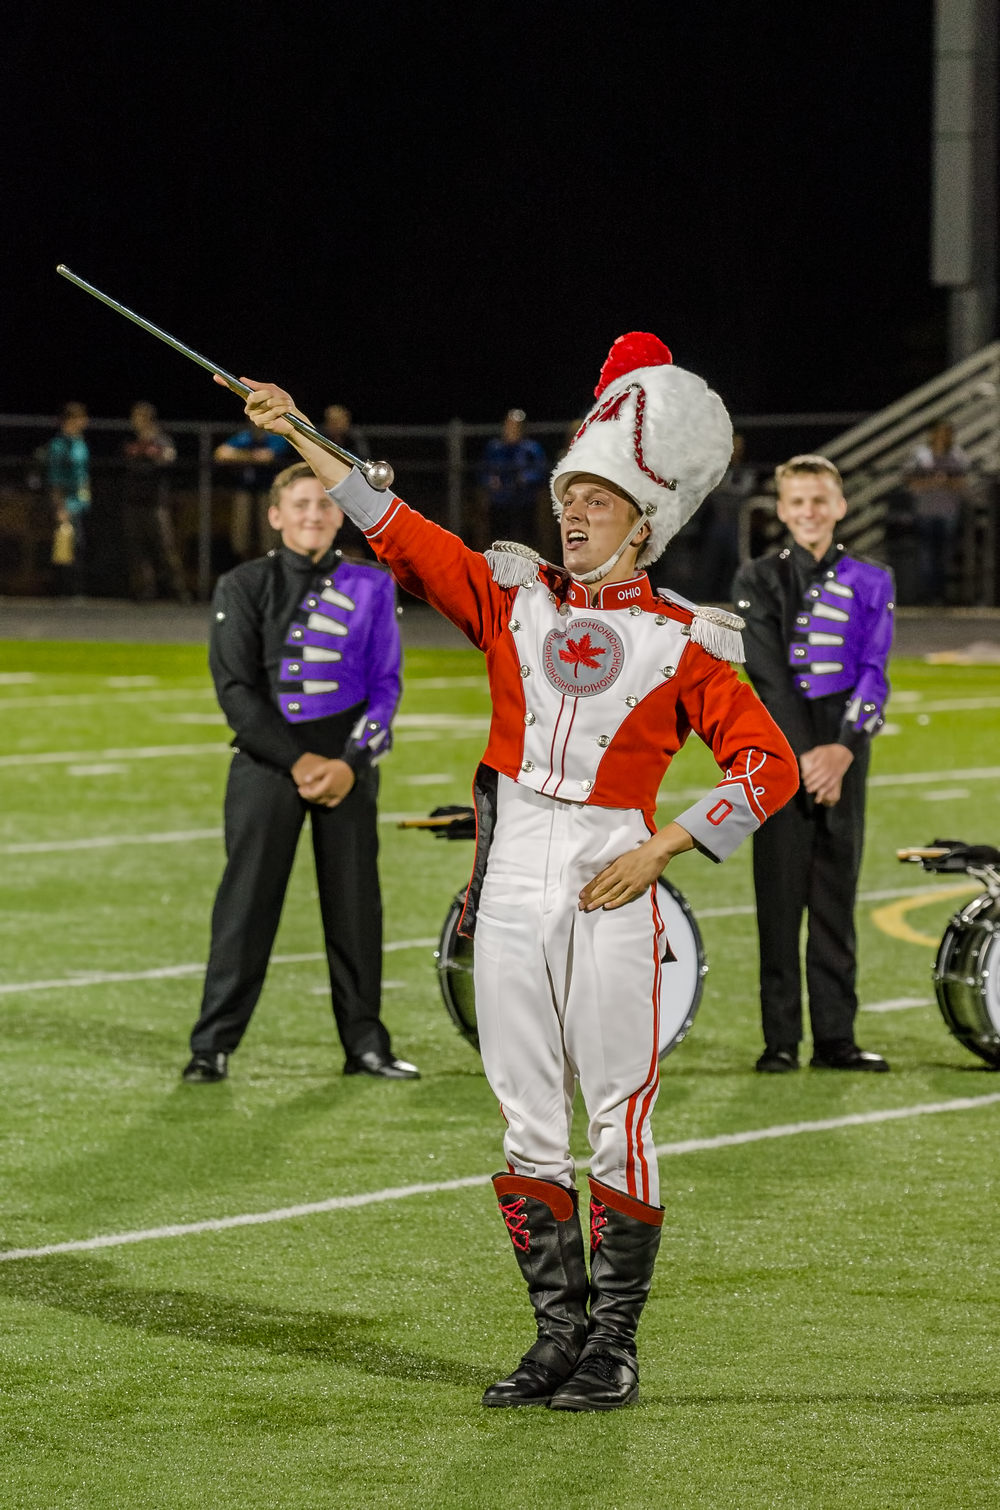 John LaVange - OSU Drum Major  Nikon D7000 ISO 640 120mm f/5.6 1/125 sec.